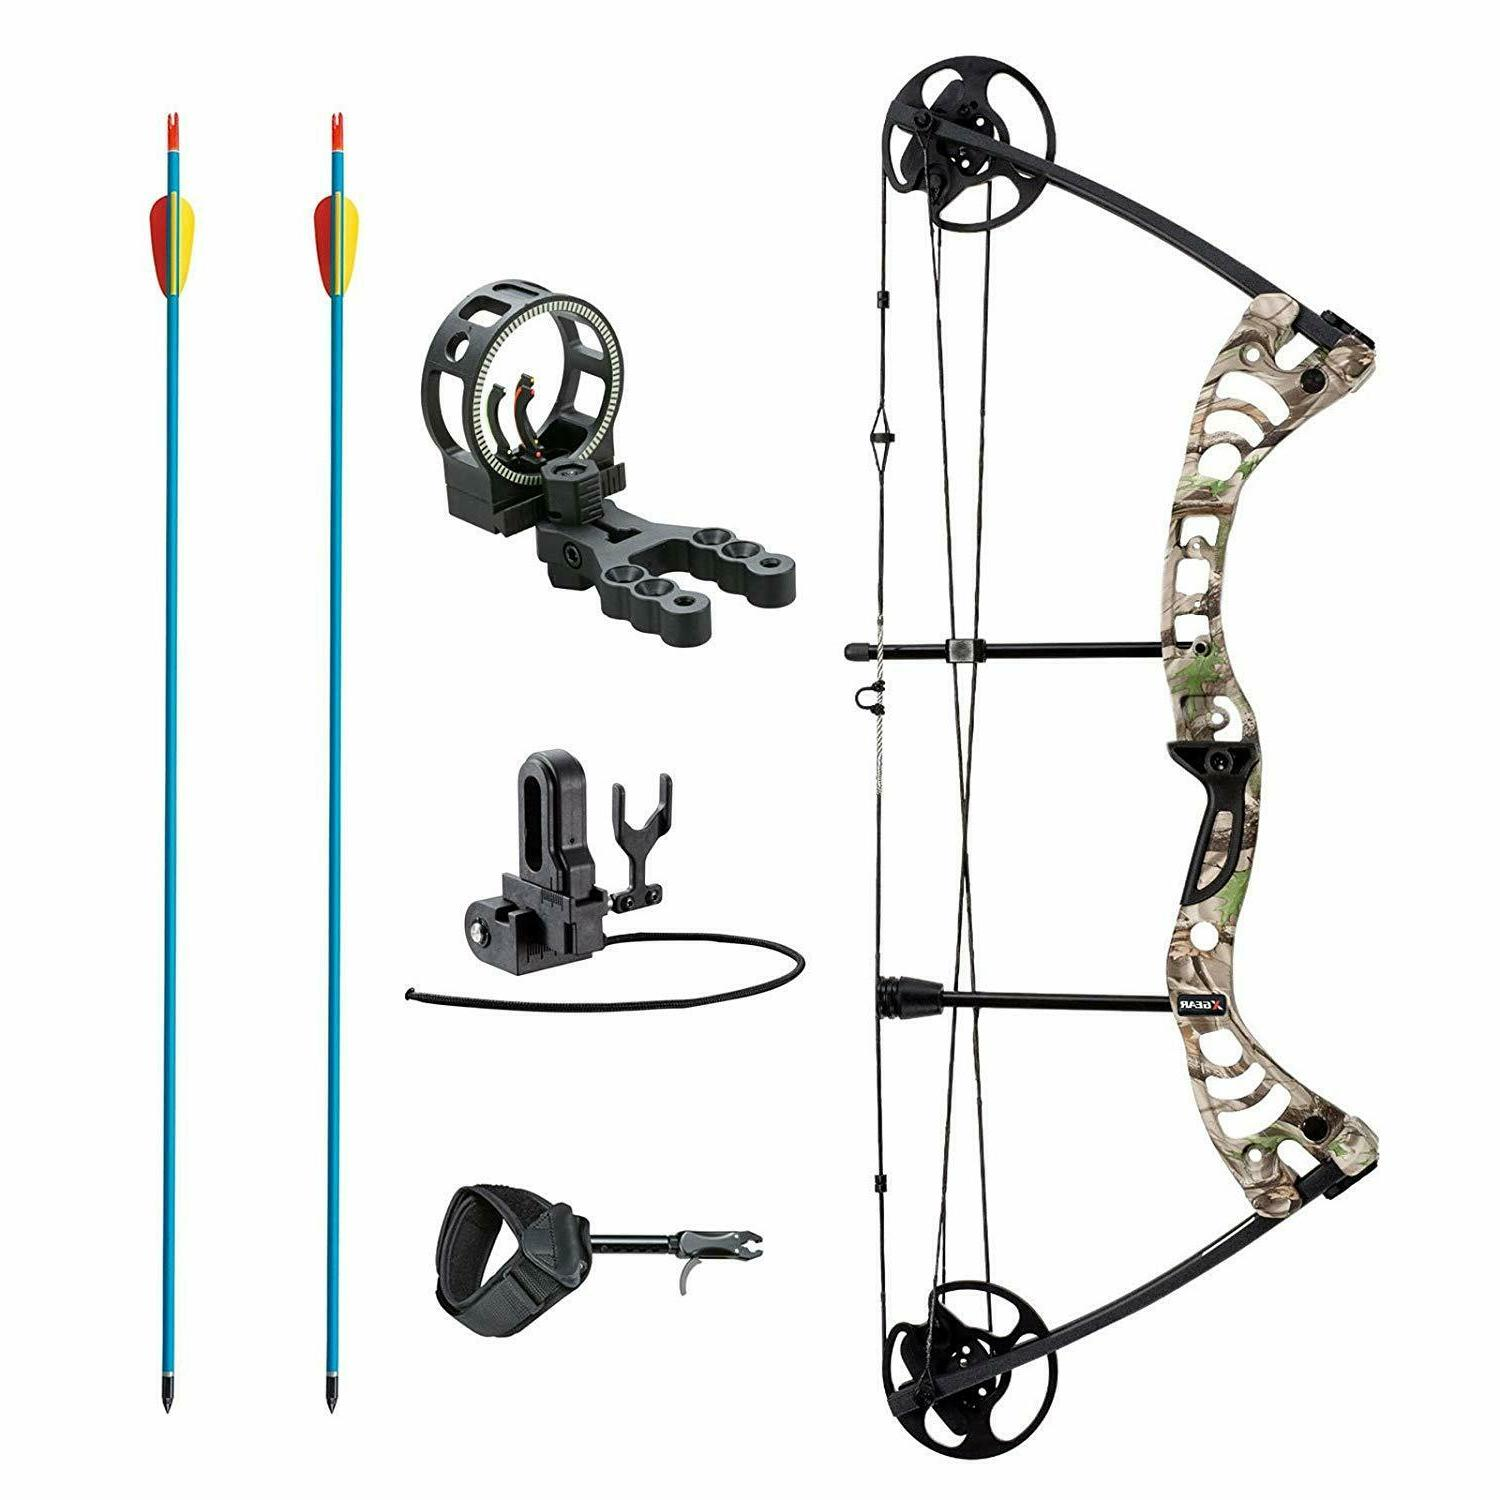 outdoors compound bow kit 30 55 lbs